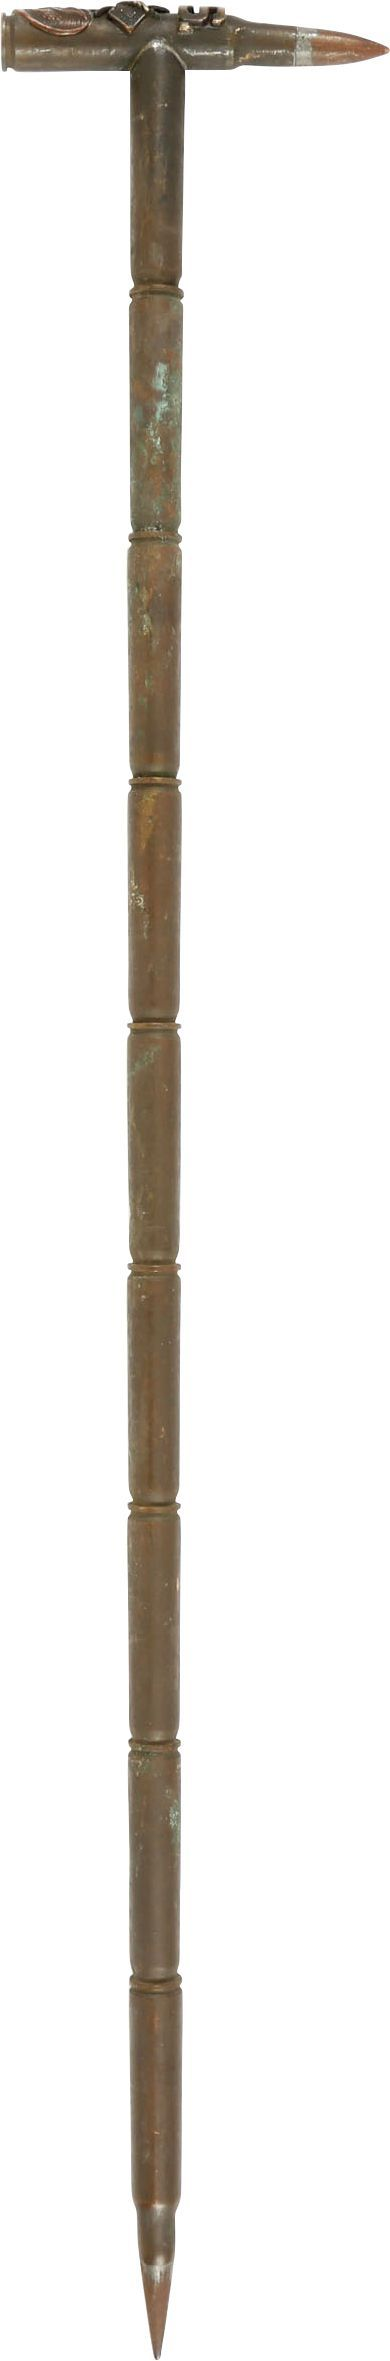 Wwi Trench Art Swagger Stick - Product